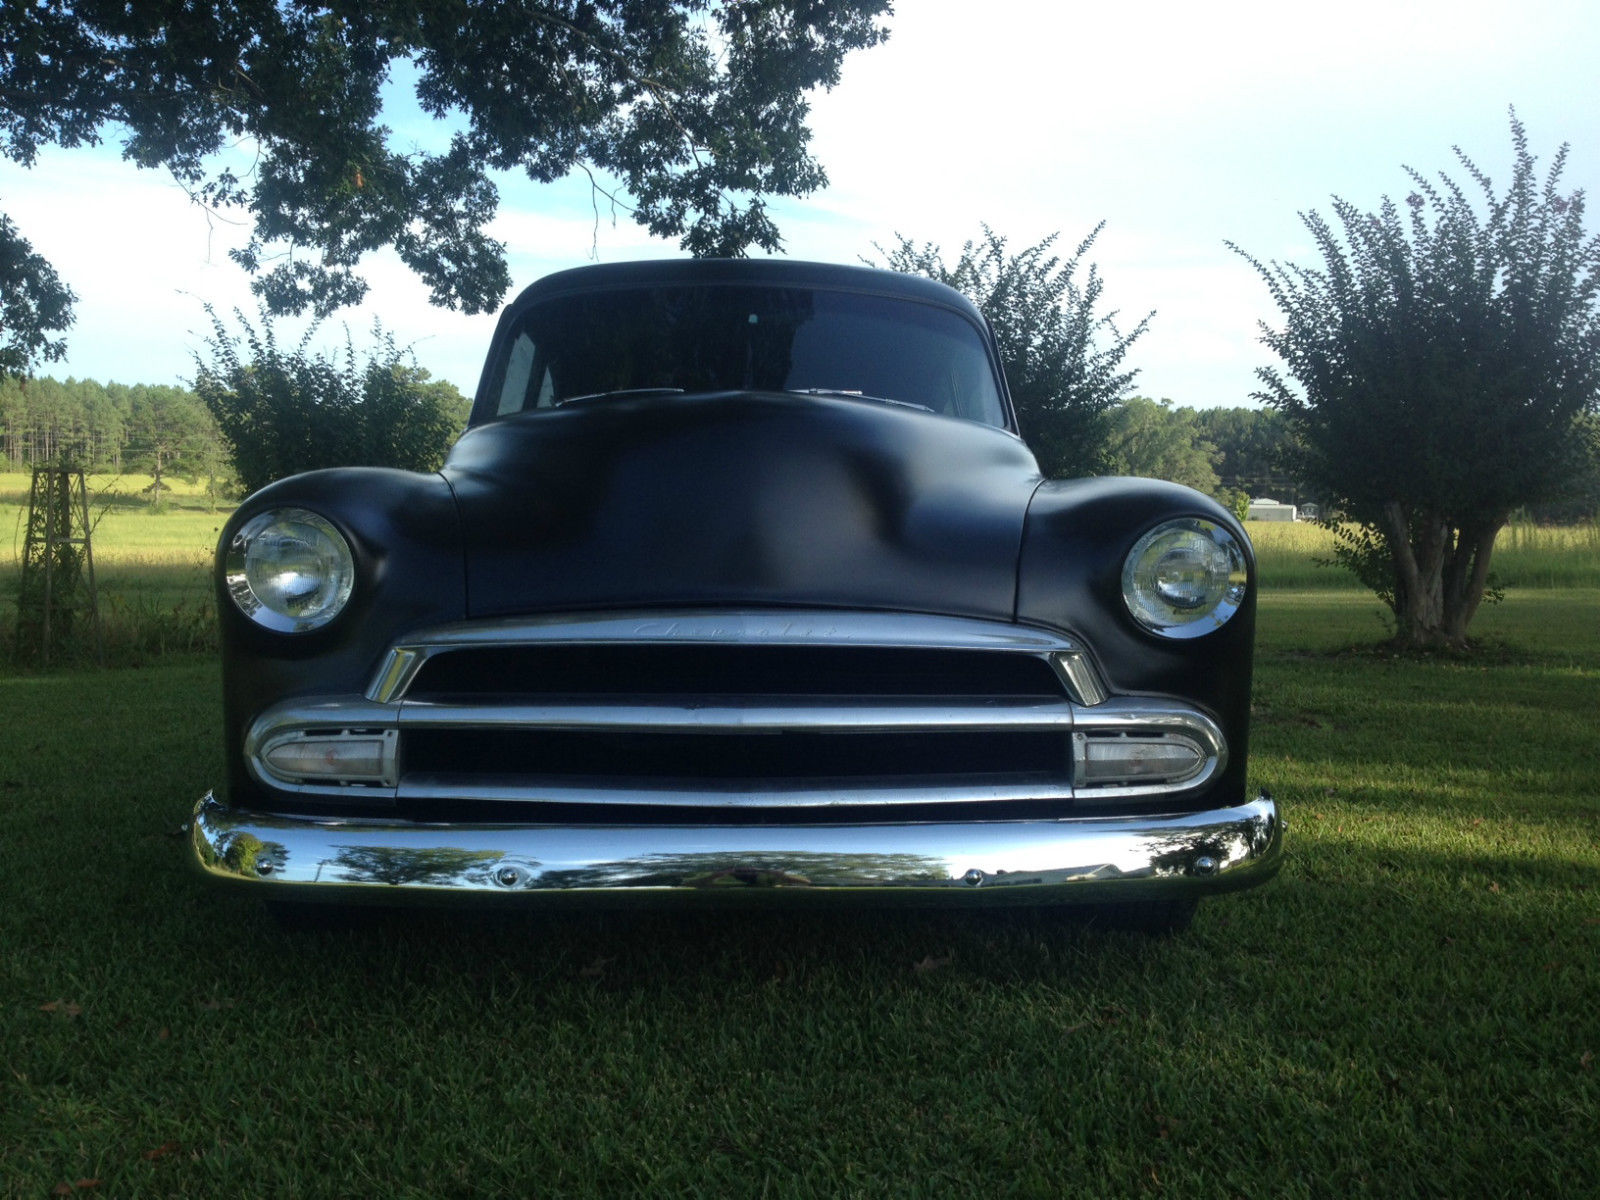 1952 chevrolet styleline deluxe 2 door custom rat rod for 1952 chevy deluxe 2 door for sale